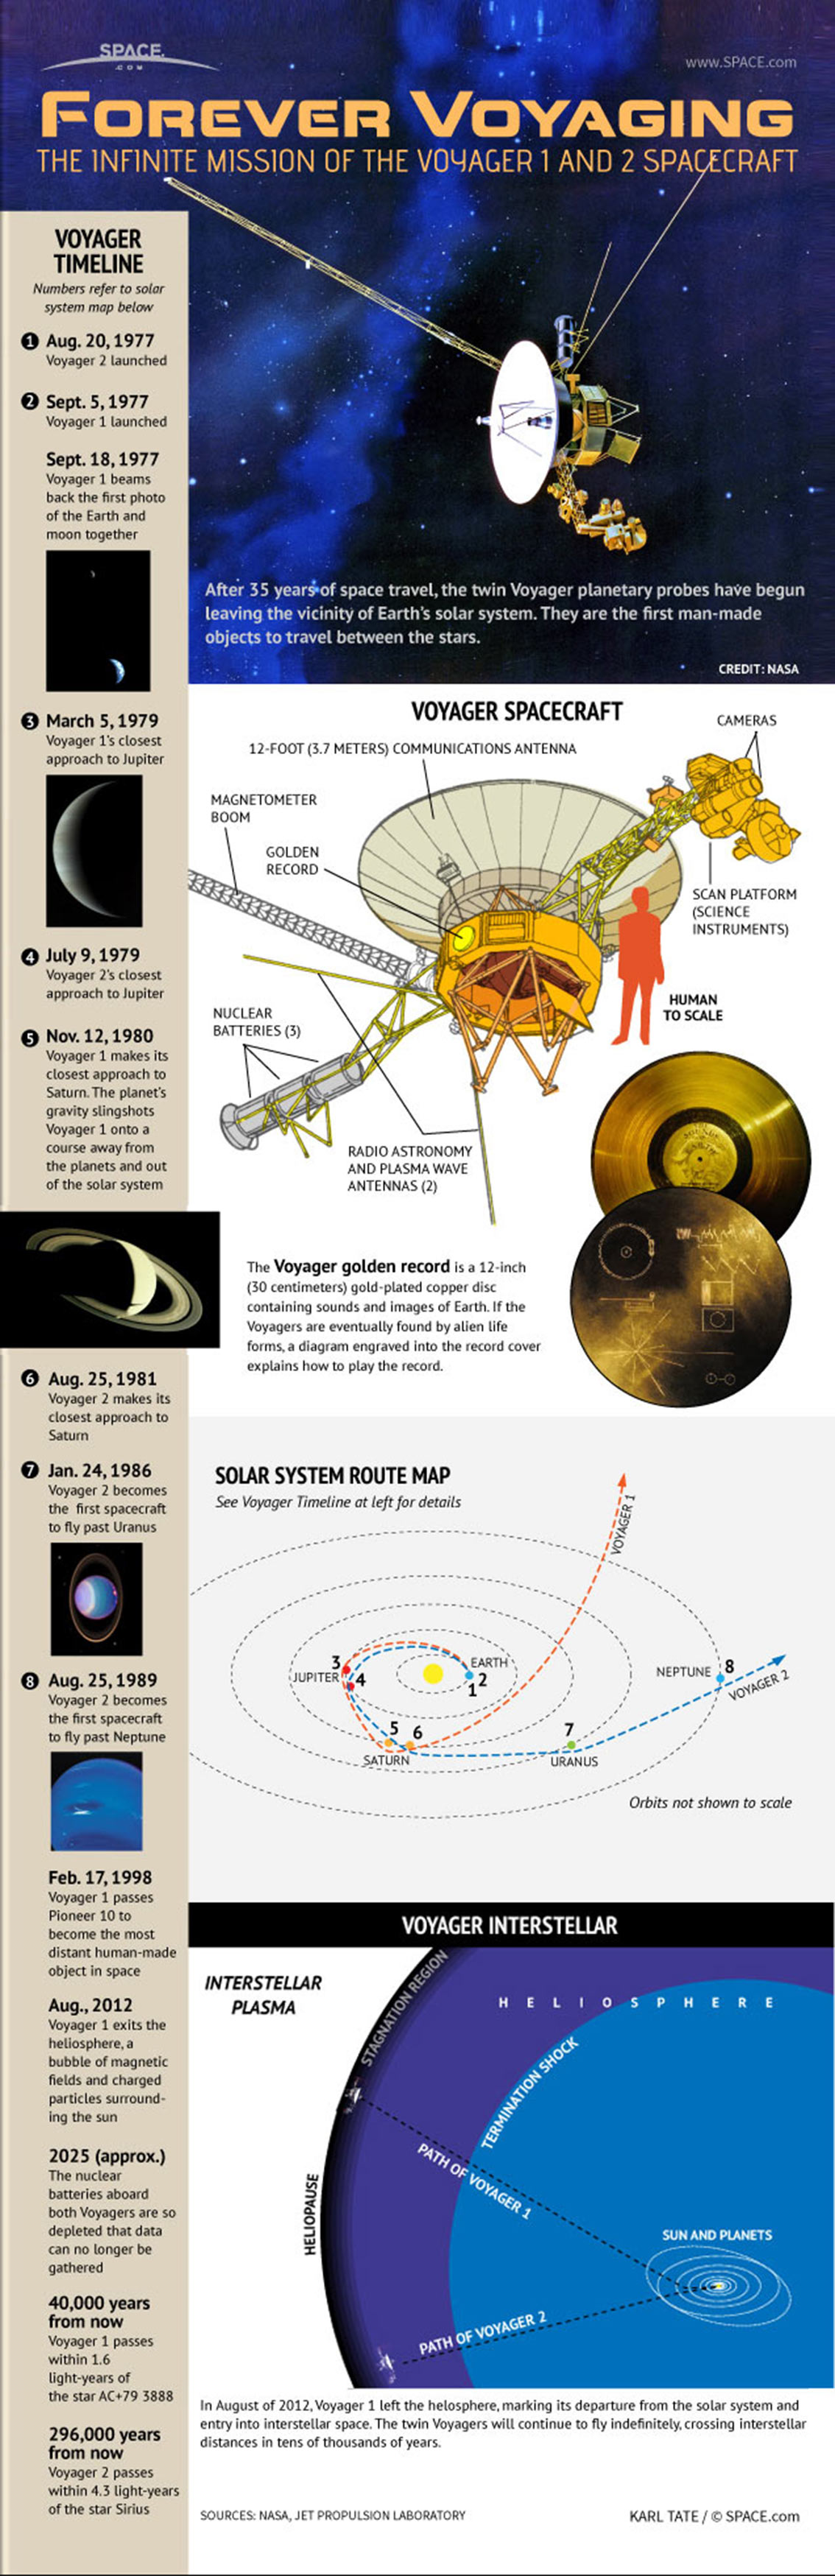 Voyager 1 - The Farthest Spacecraft From Earth Infographic